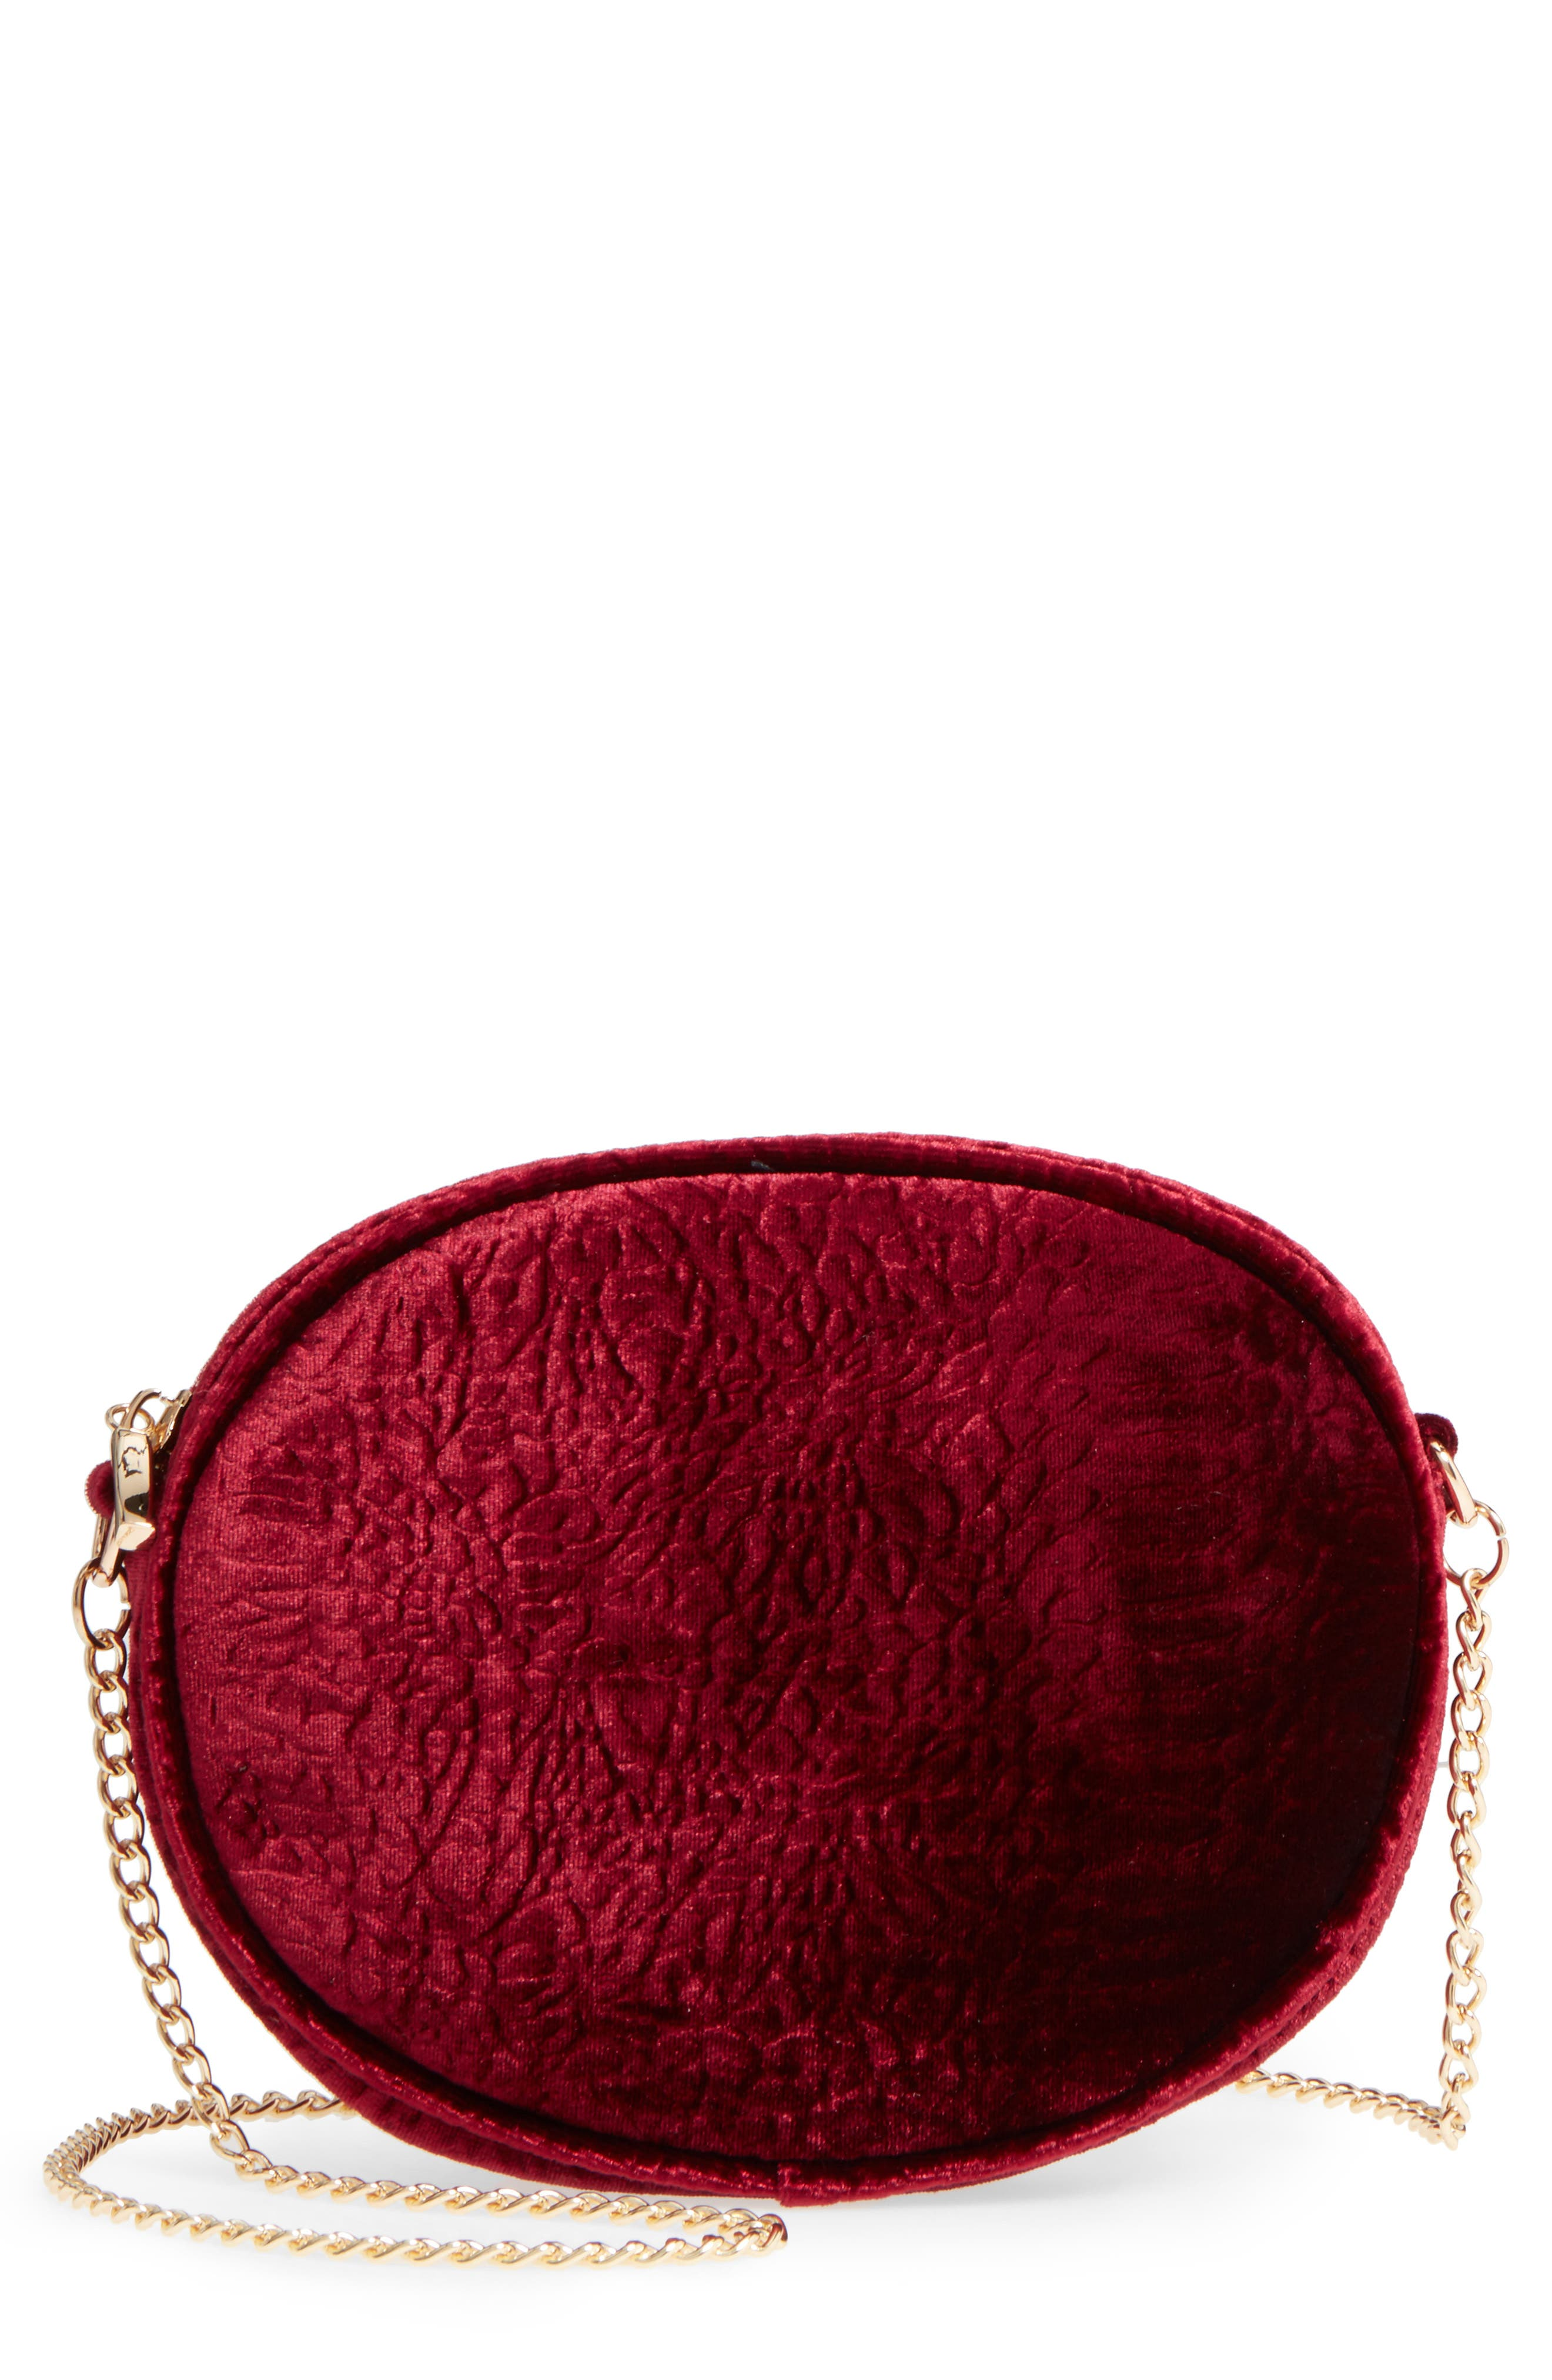 Miza Crossbody Bag,                             Main thumbnail 1, color,                             Ruby